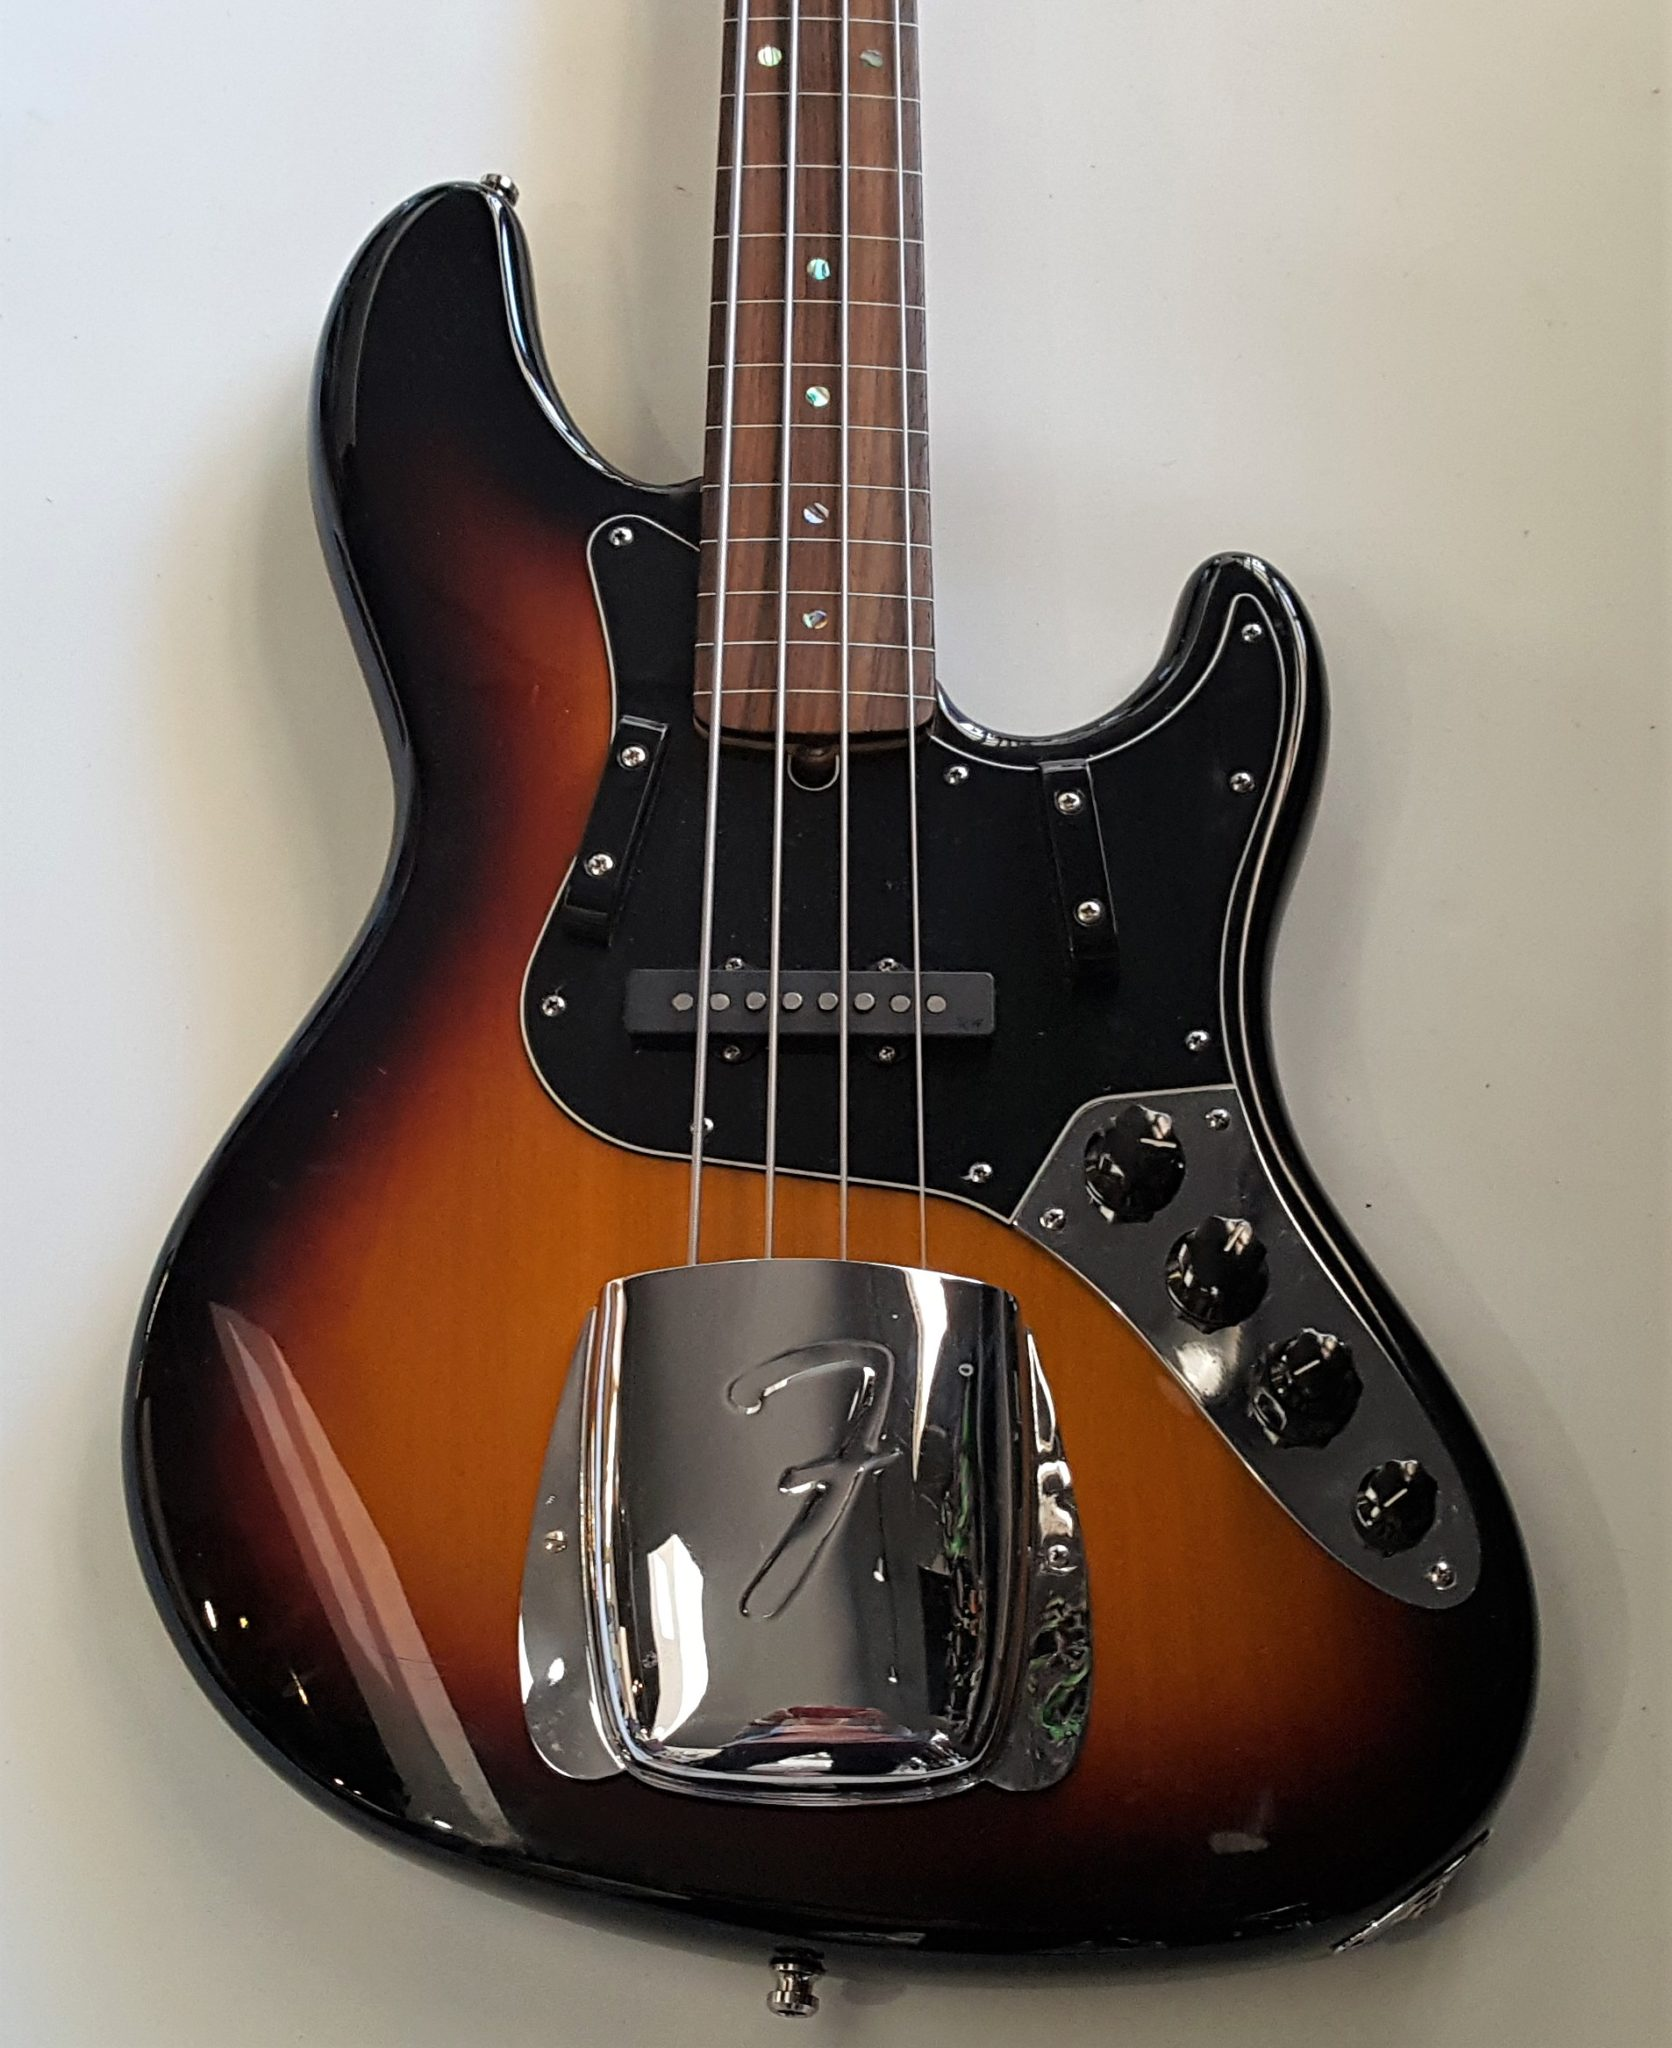 Fender American Deluxe Jazz Bass Fretless 2005 3-Color Sunburst